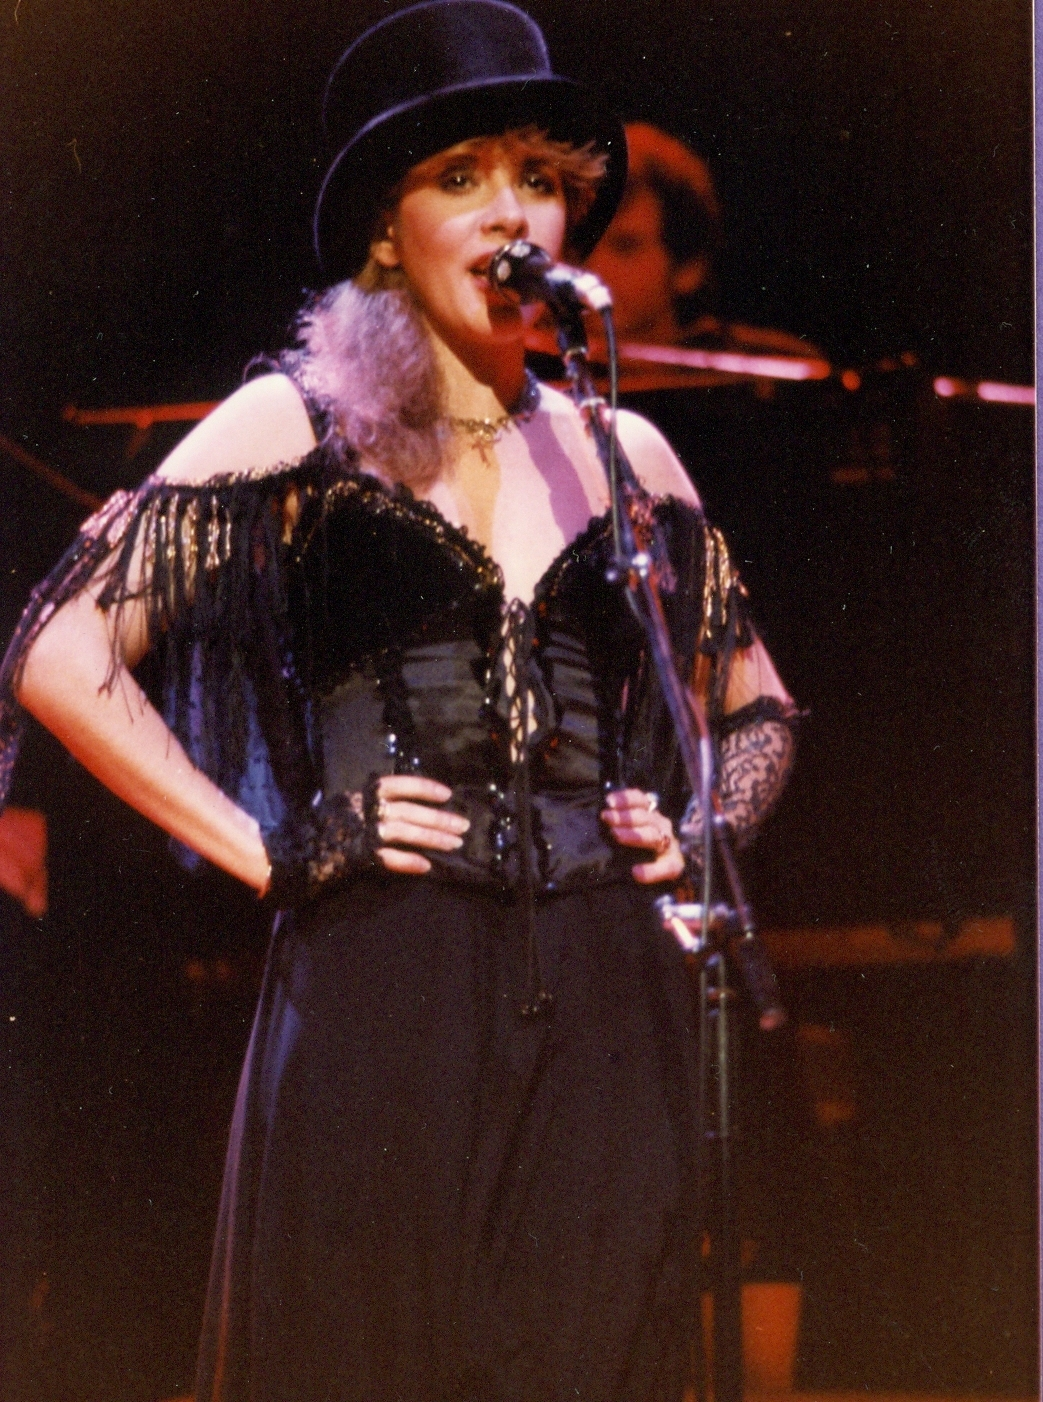 Stevie-Nicks-stevie-nicks-21187482-1043-1402